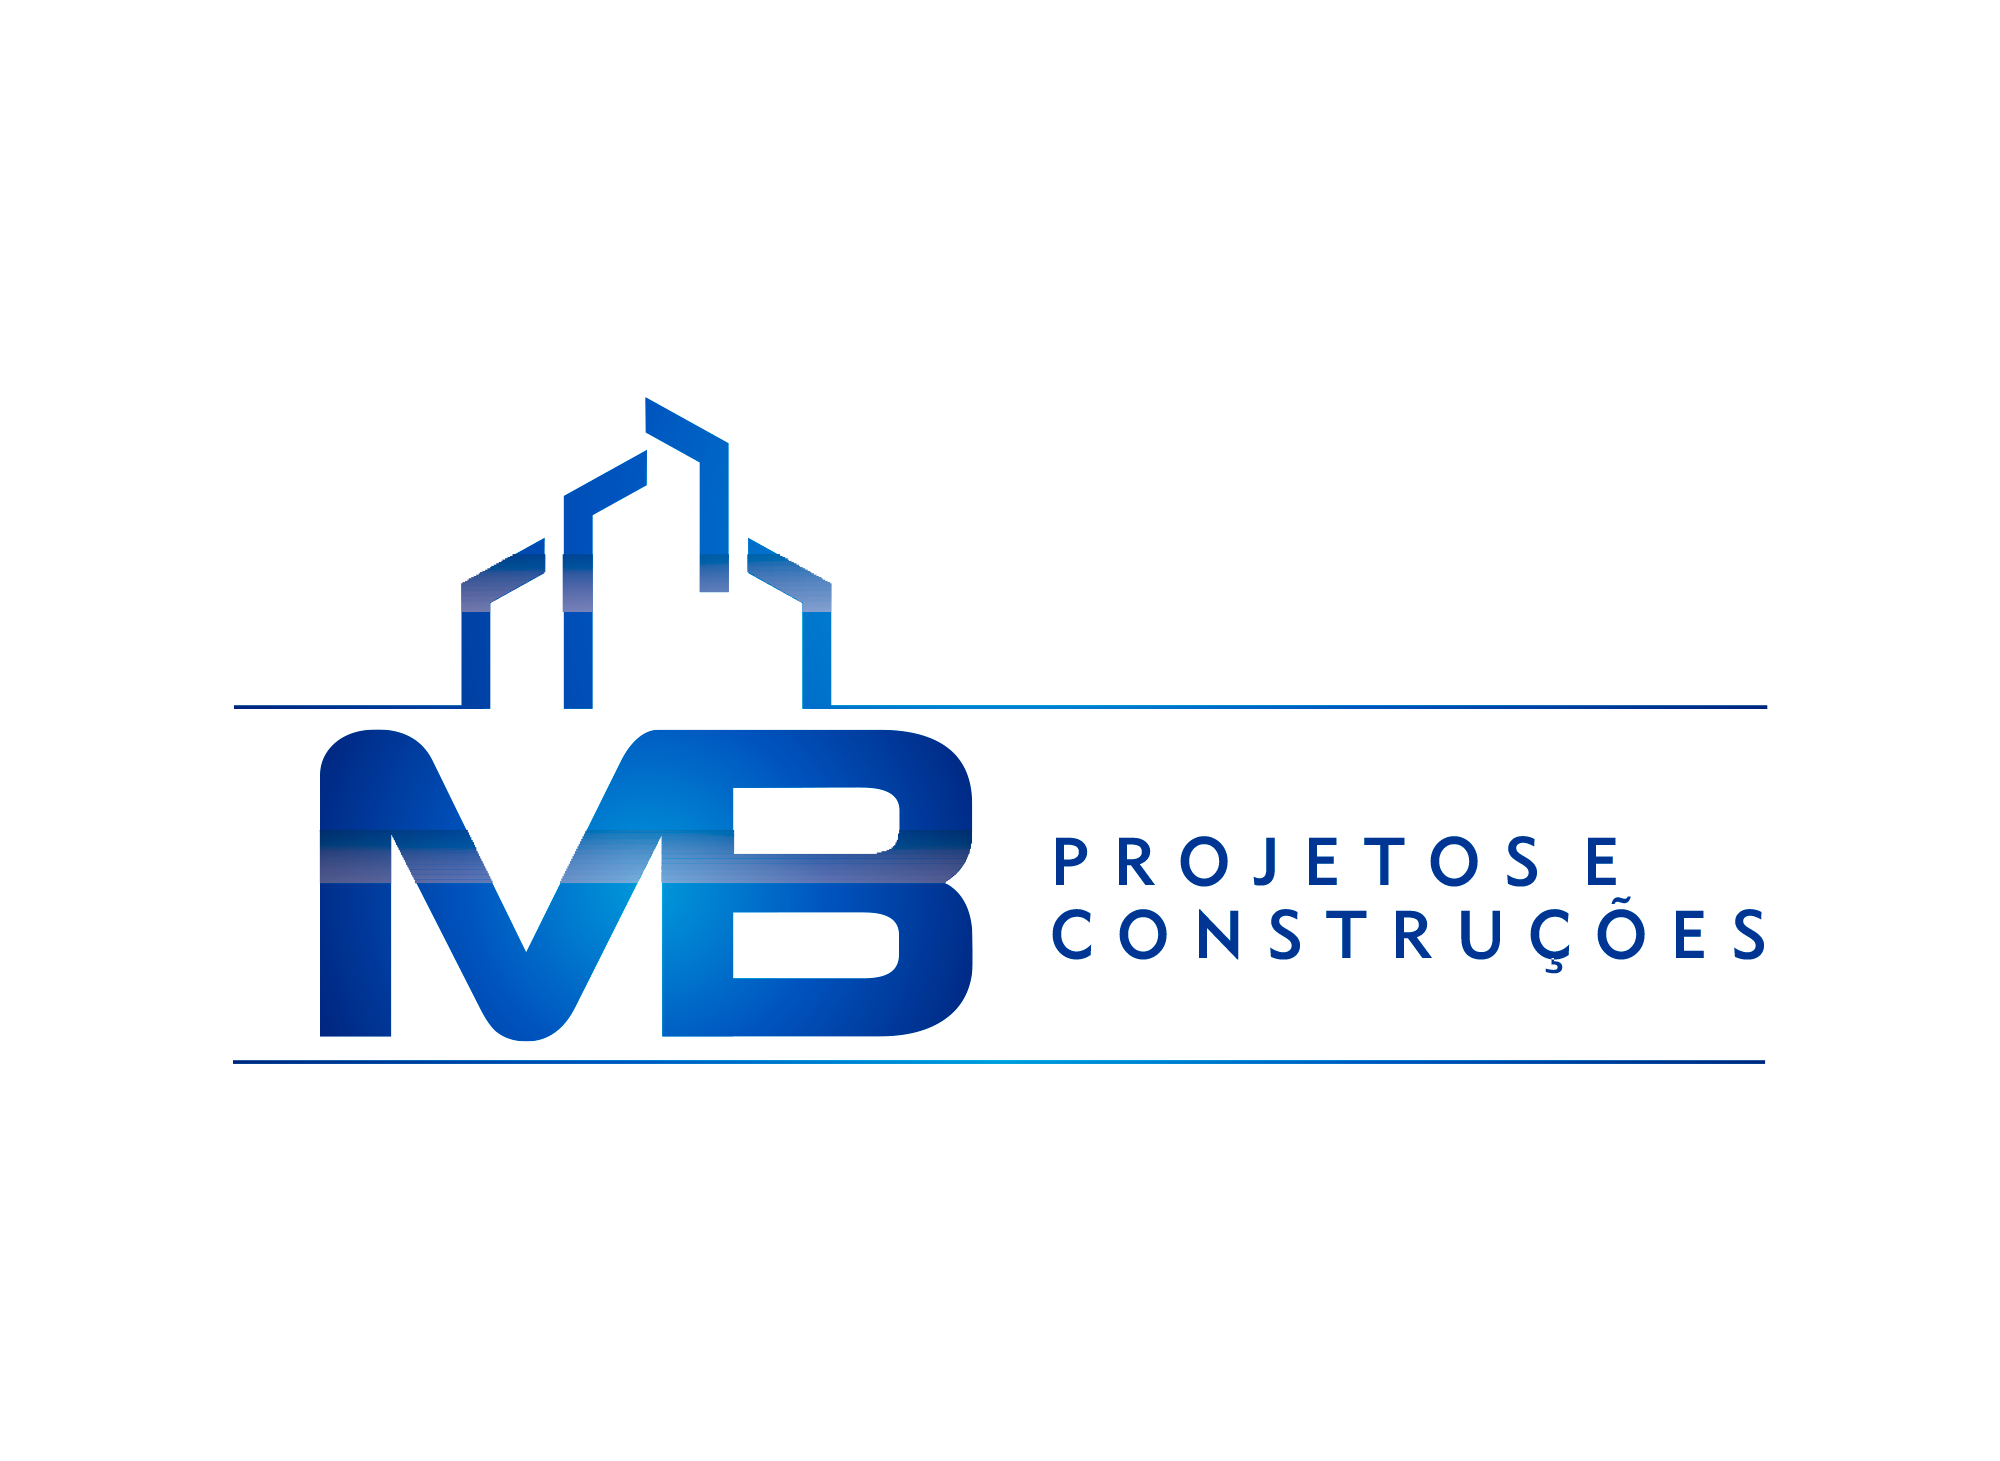 mb-projetos-construcoes-clientes-atendidos-agencia-diretriz-digital-marketing-fortaleza